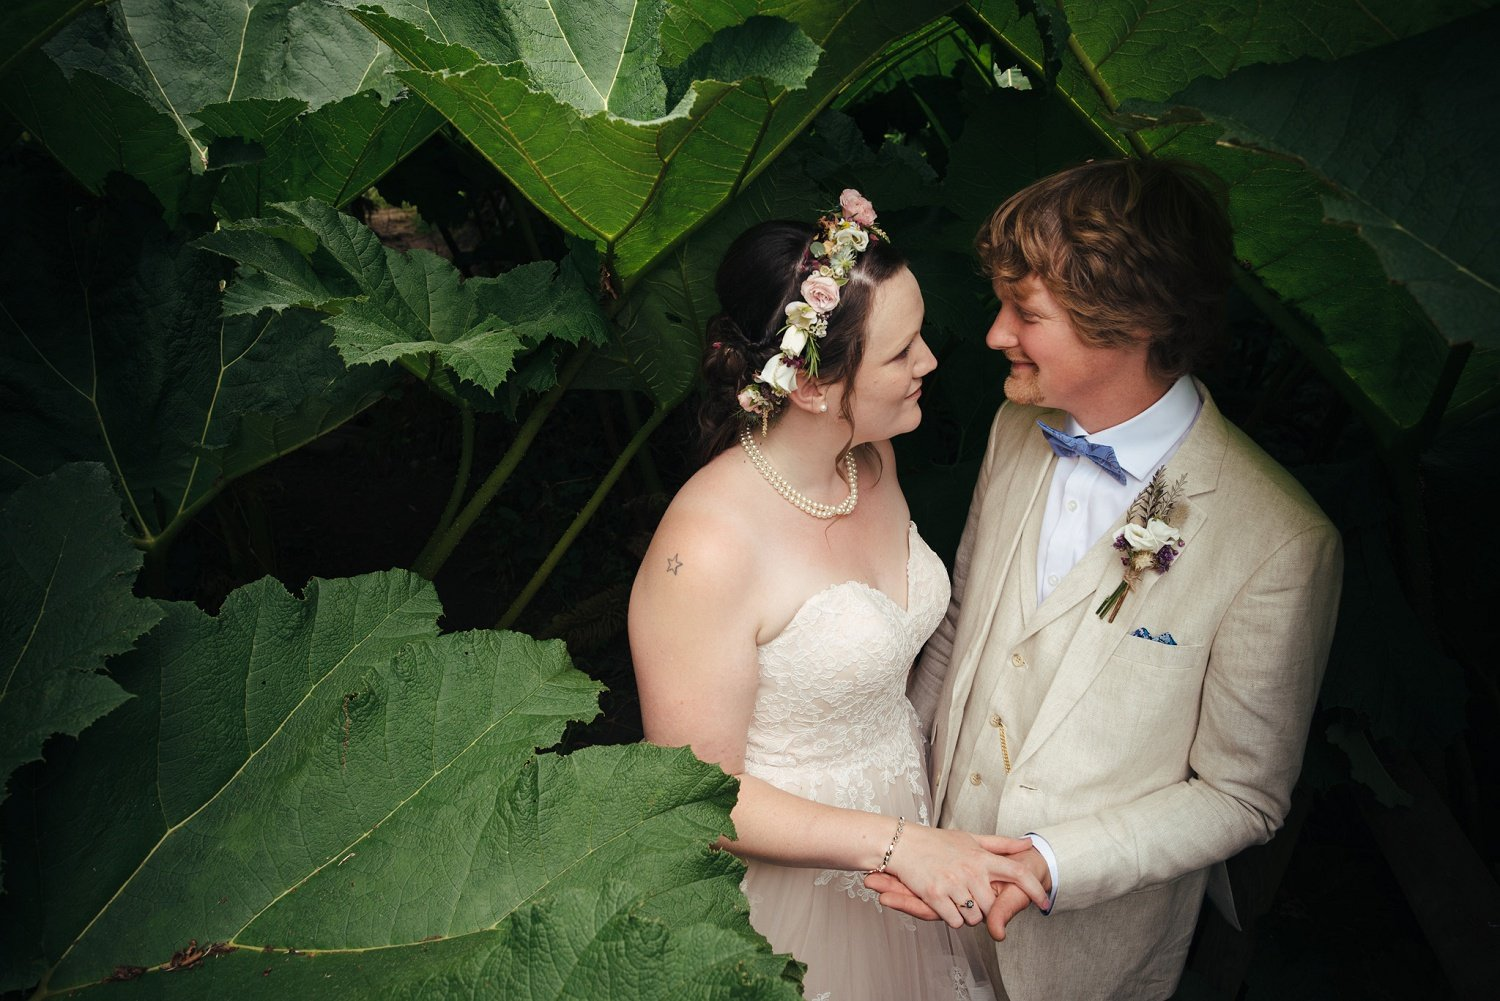 Half body photo of a bride and groom looking at each other in the follies